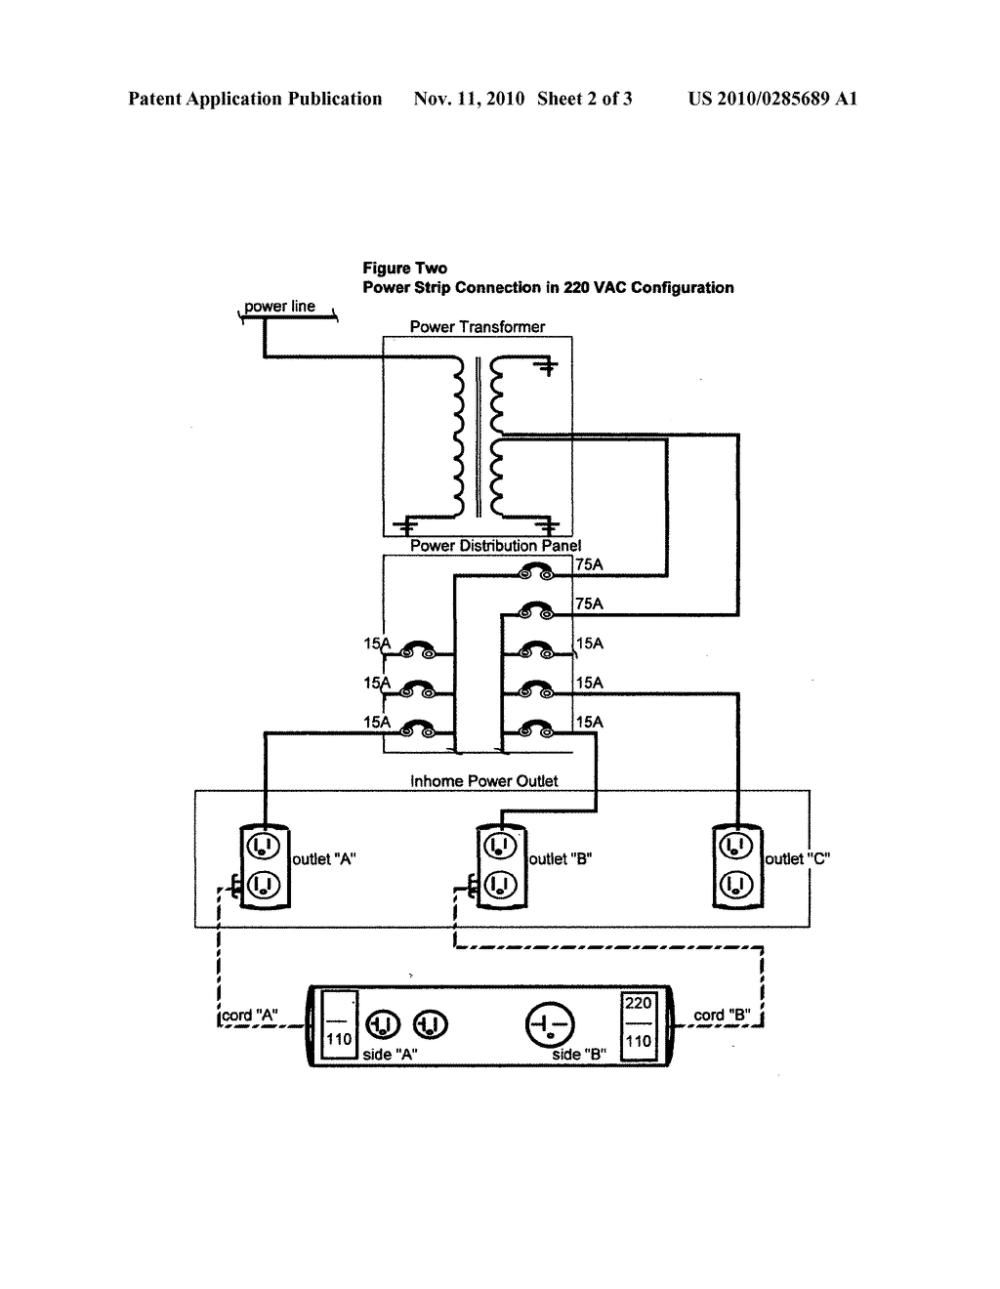 medium resolution of power strip schematic my wiring diagram power strip with 110 and 220 volt outlets diagram